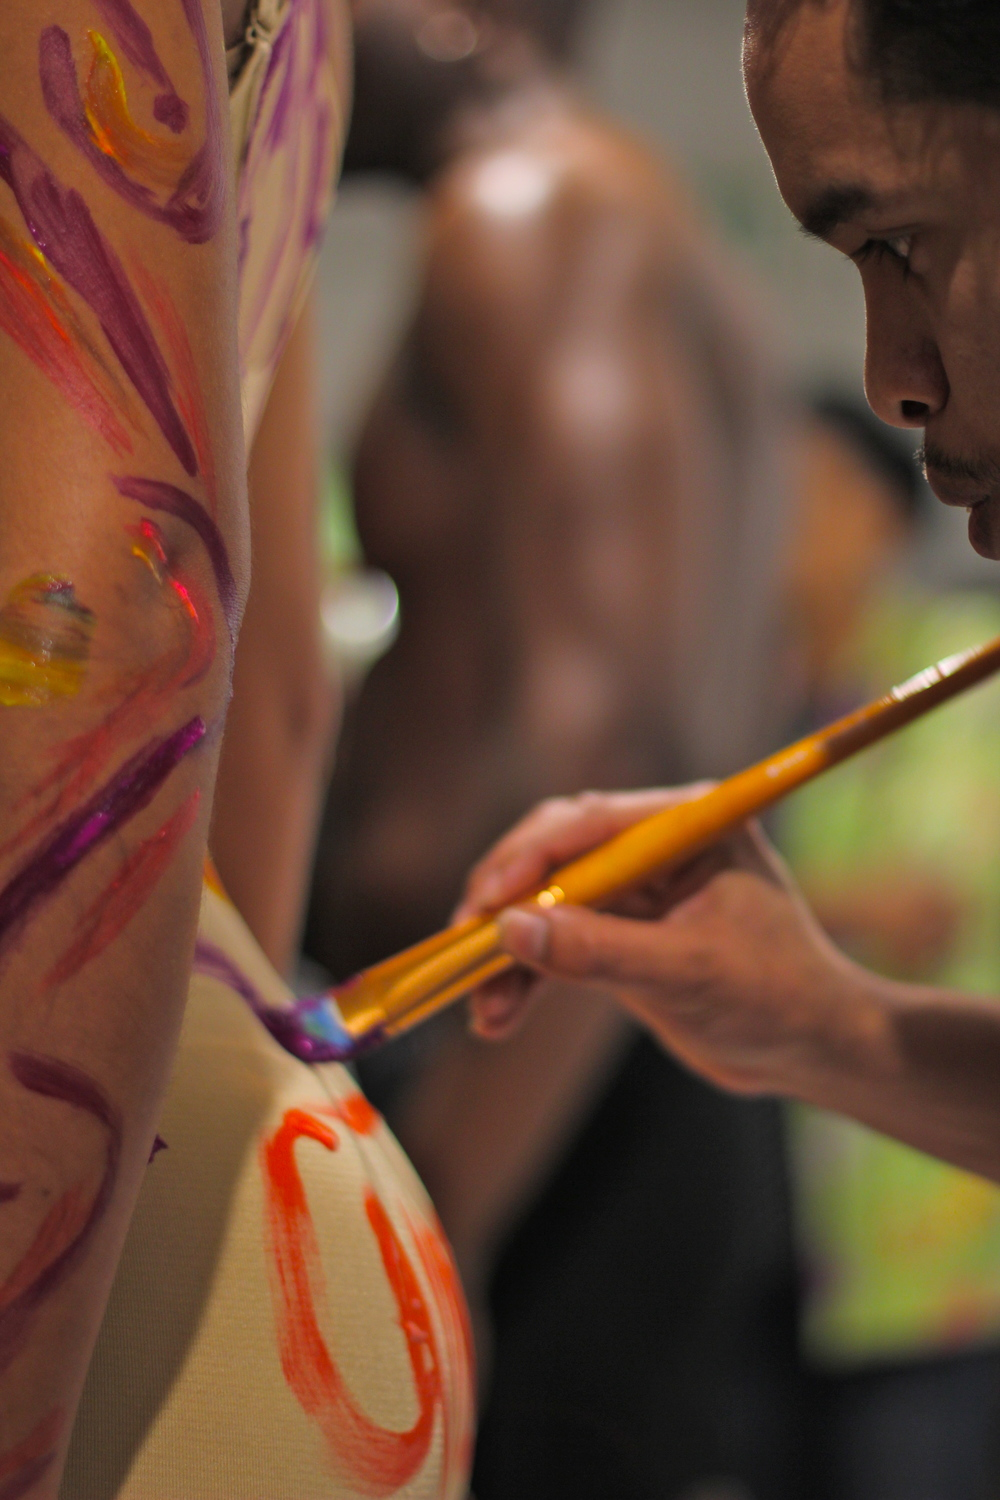 live model body painting les femmes